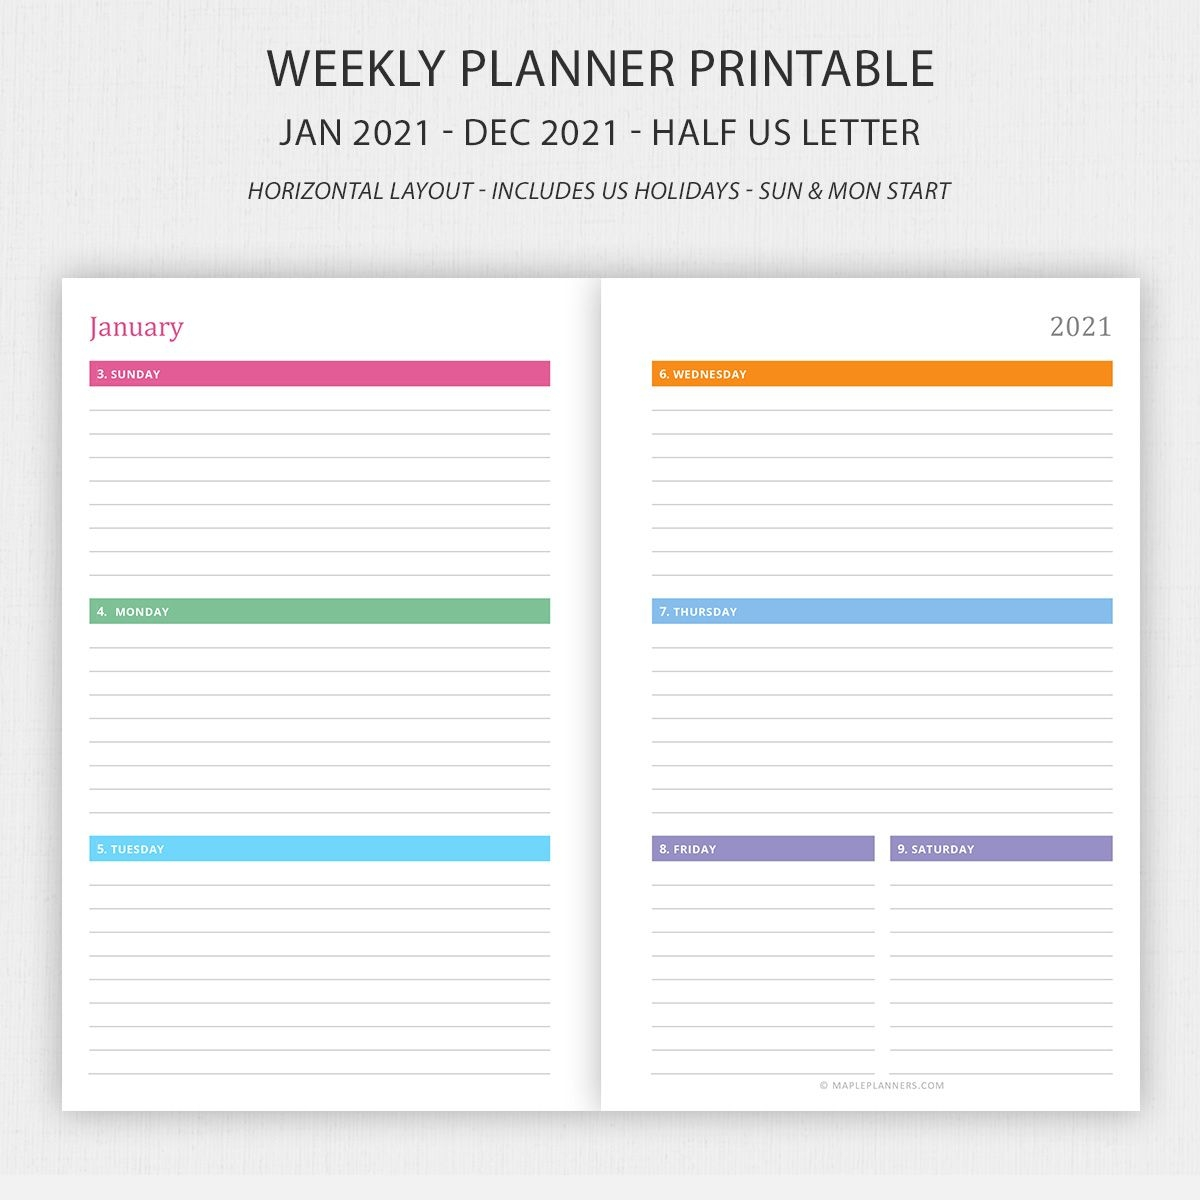 Half Letter Weekly Planner 2021 Horizontal Layout